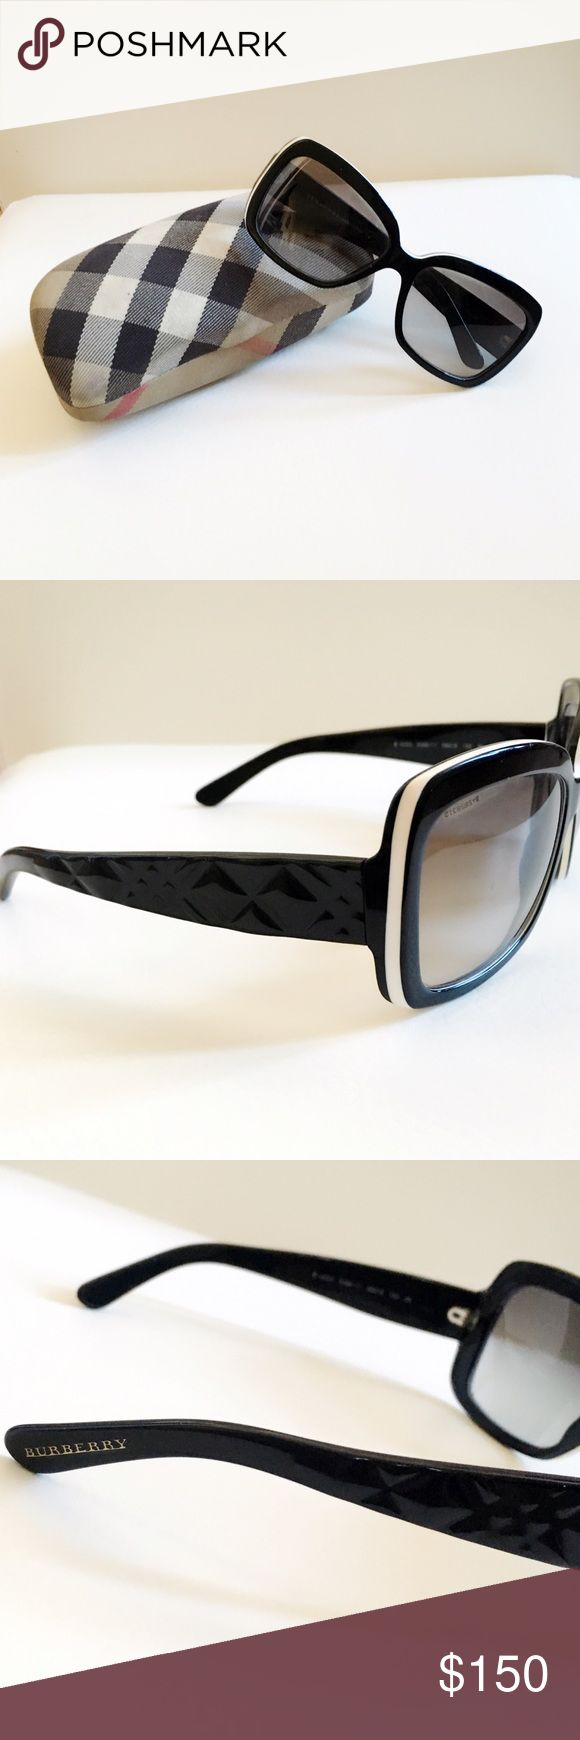 Burberry Sunglasses Black Burberry sunglasses with white accent around the frame. Case included. The case does have some small marks on them but the glasses are in great condition. Burberry Accessories Sunglasses